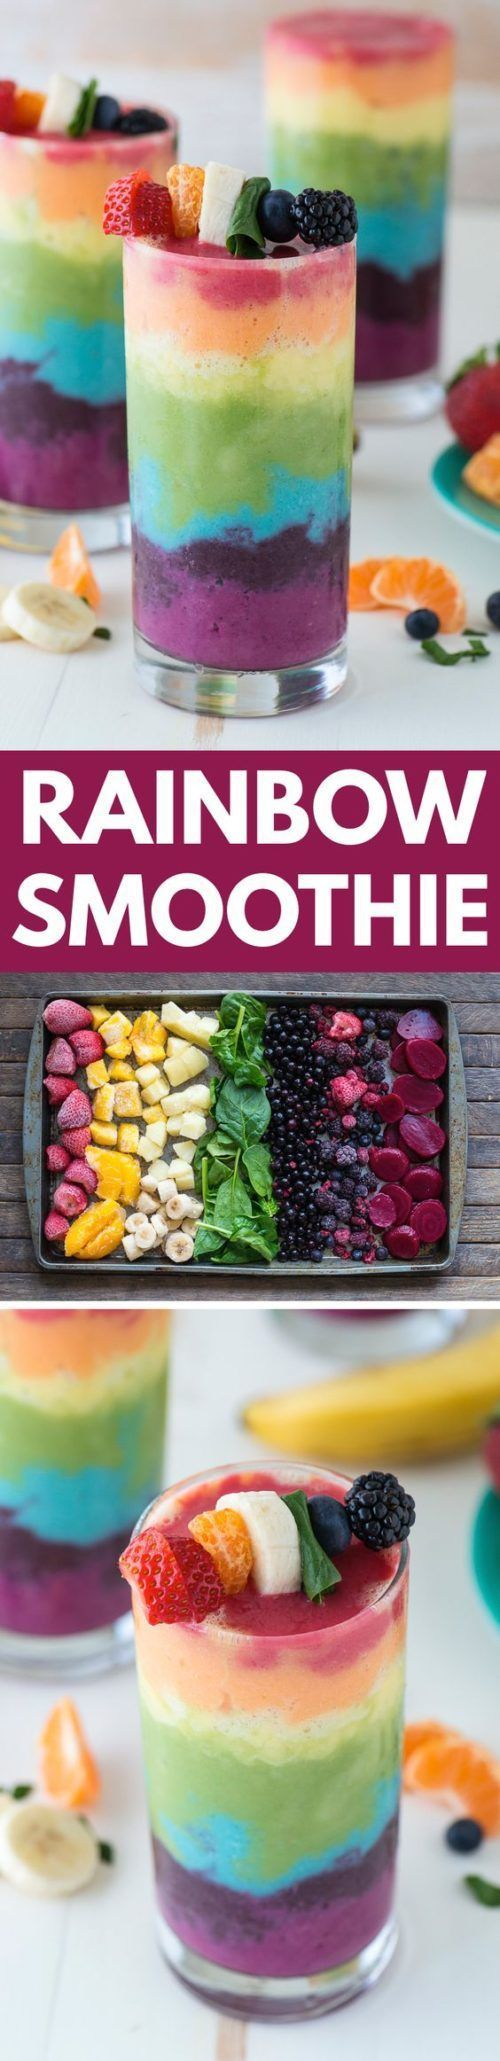 Rainbow Smoothie Recipe